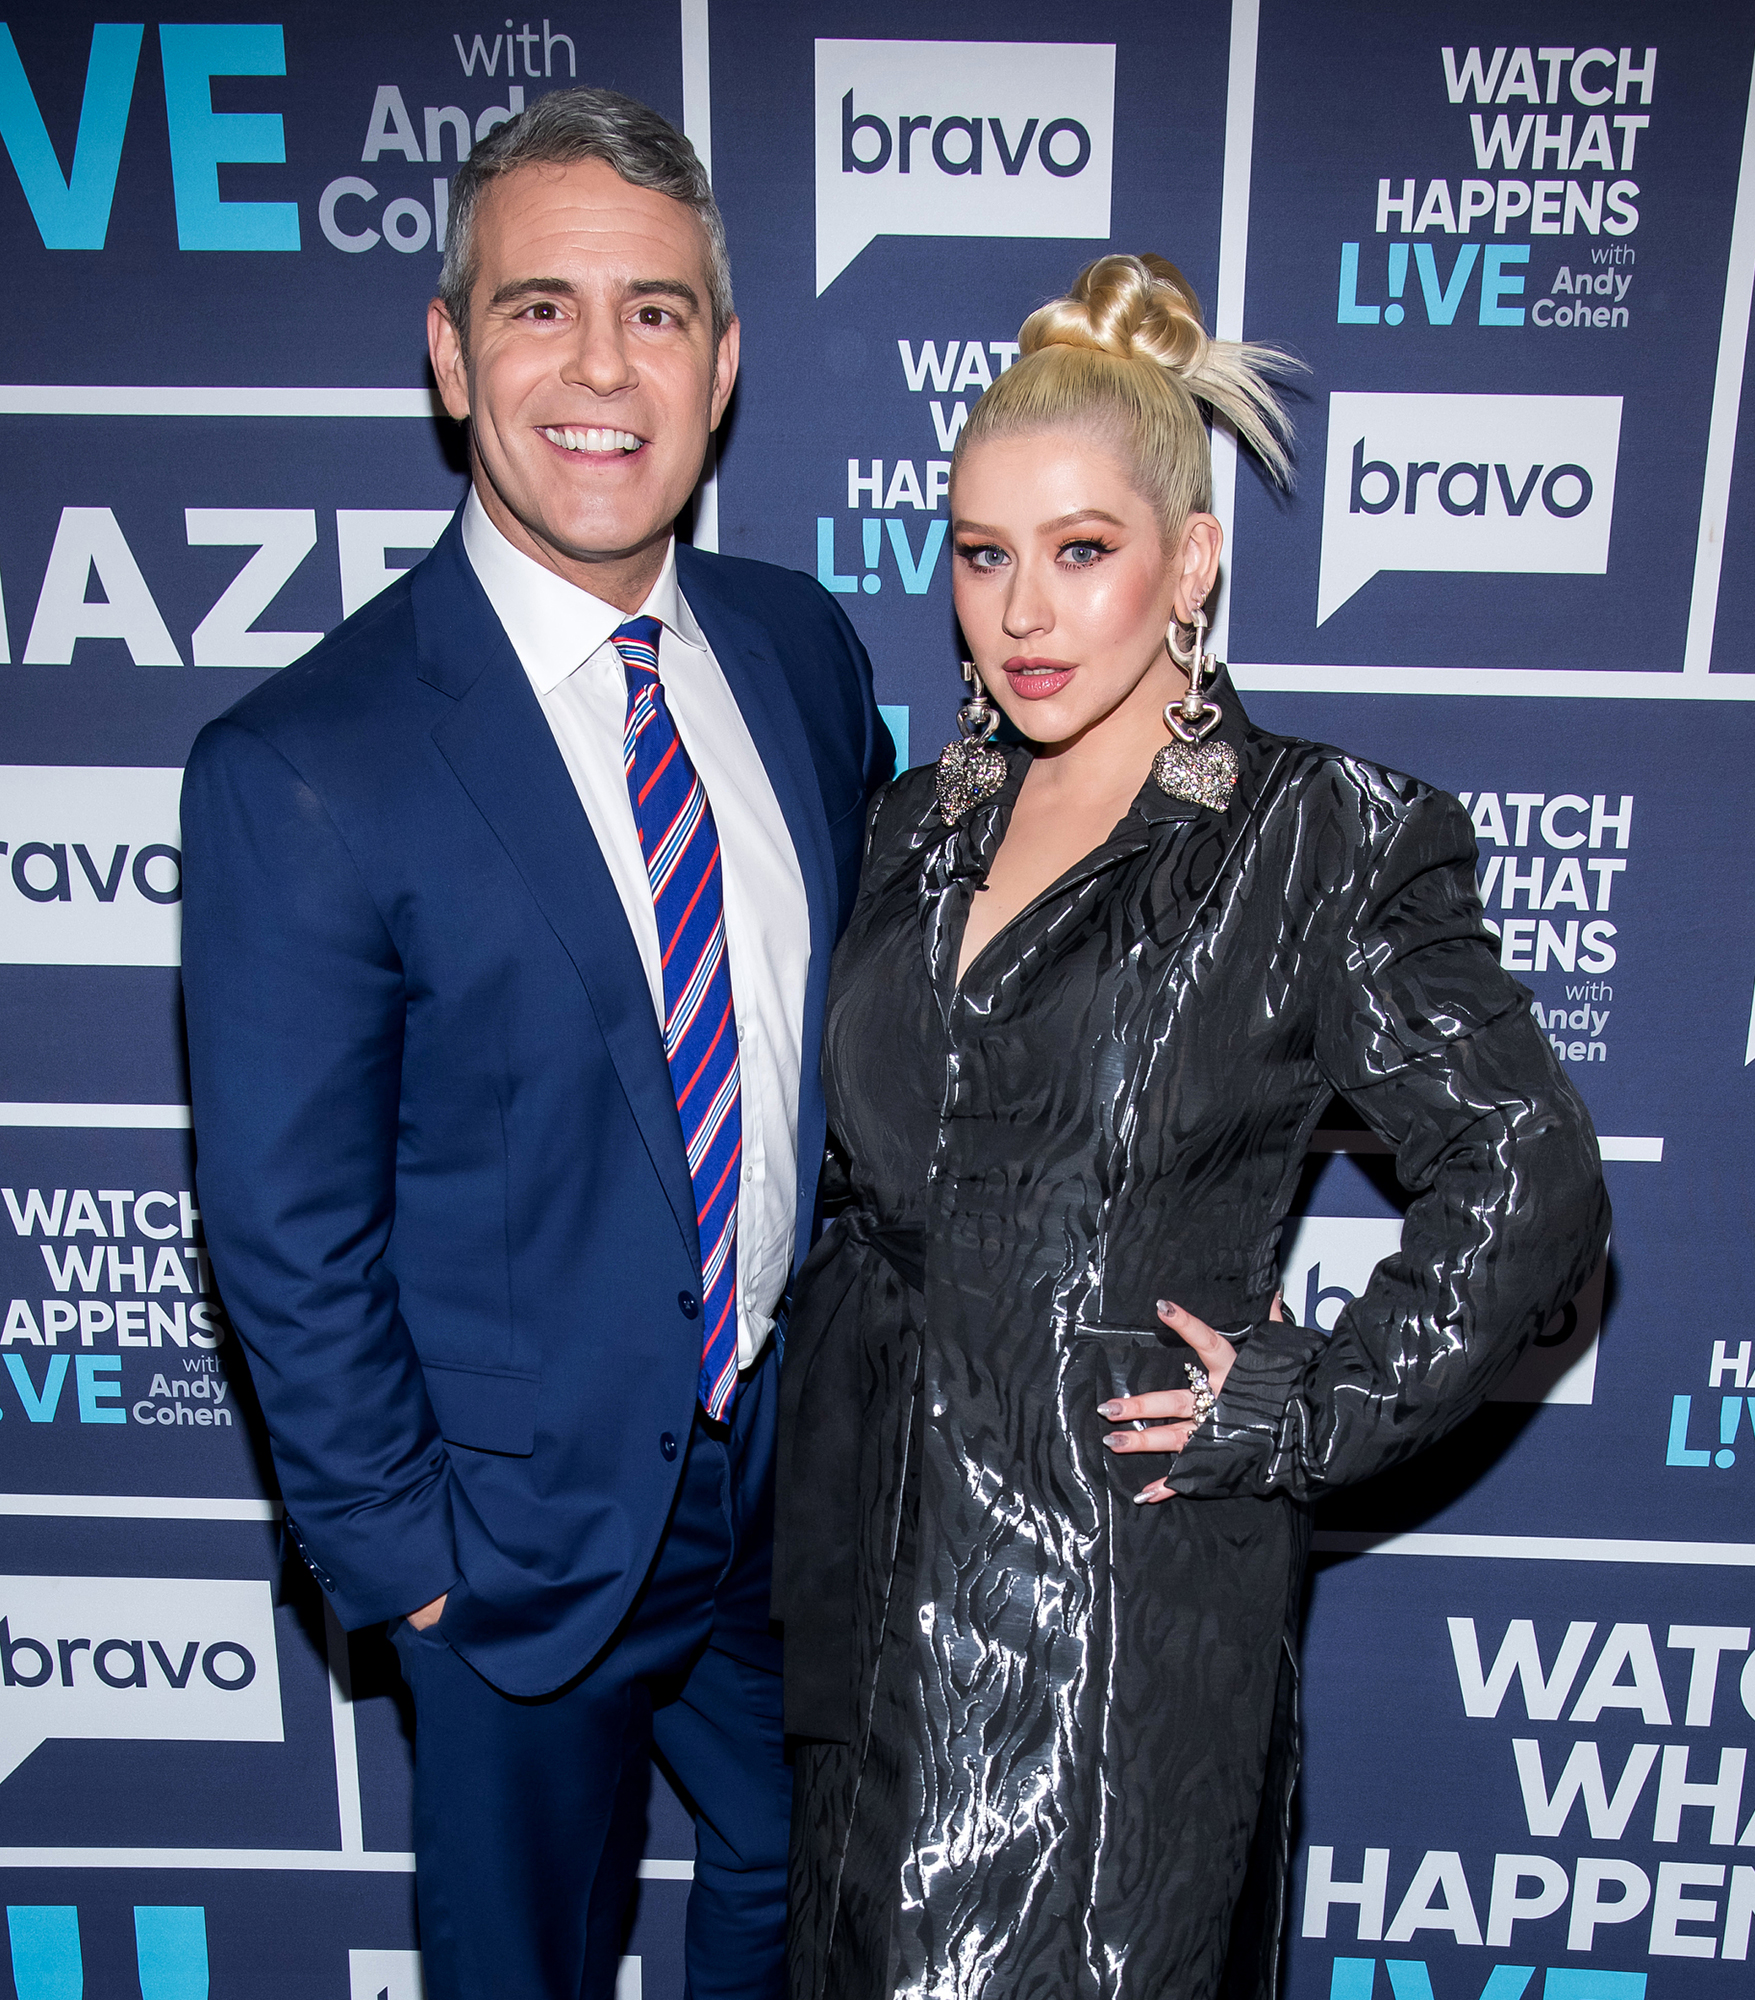 Christina Aguilera Sends Andy Cohen 3 Week Old Son Dirty Diapers Mini Chaps - Andy Cohen and Christina Aguilera.